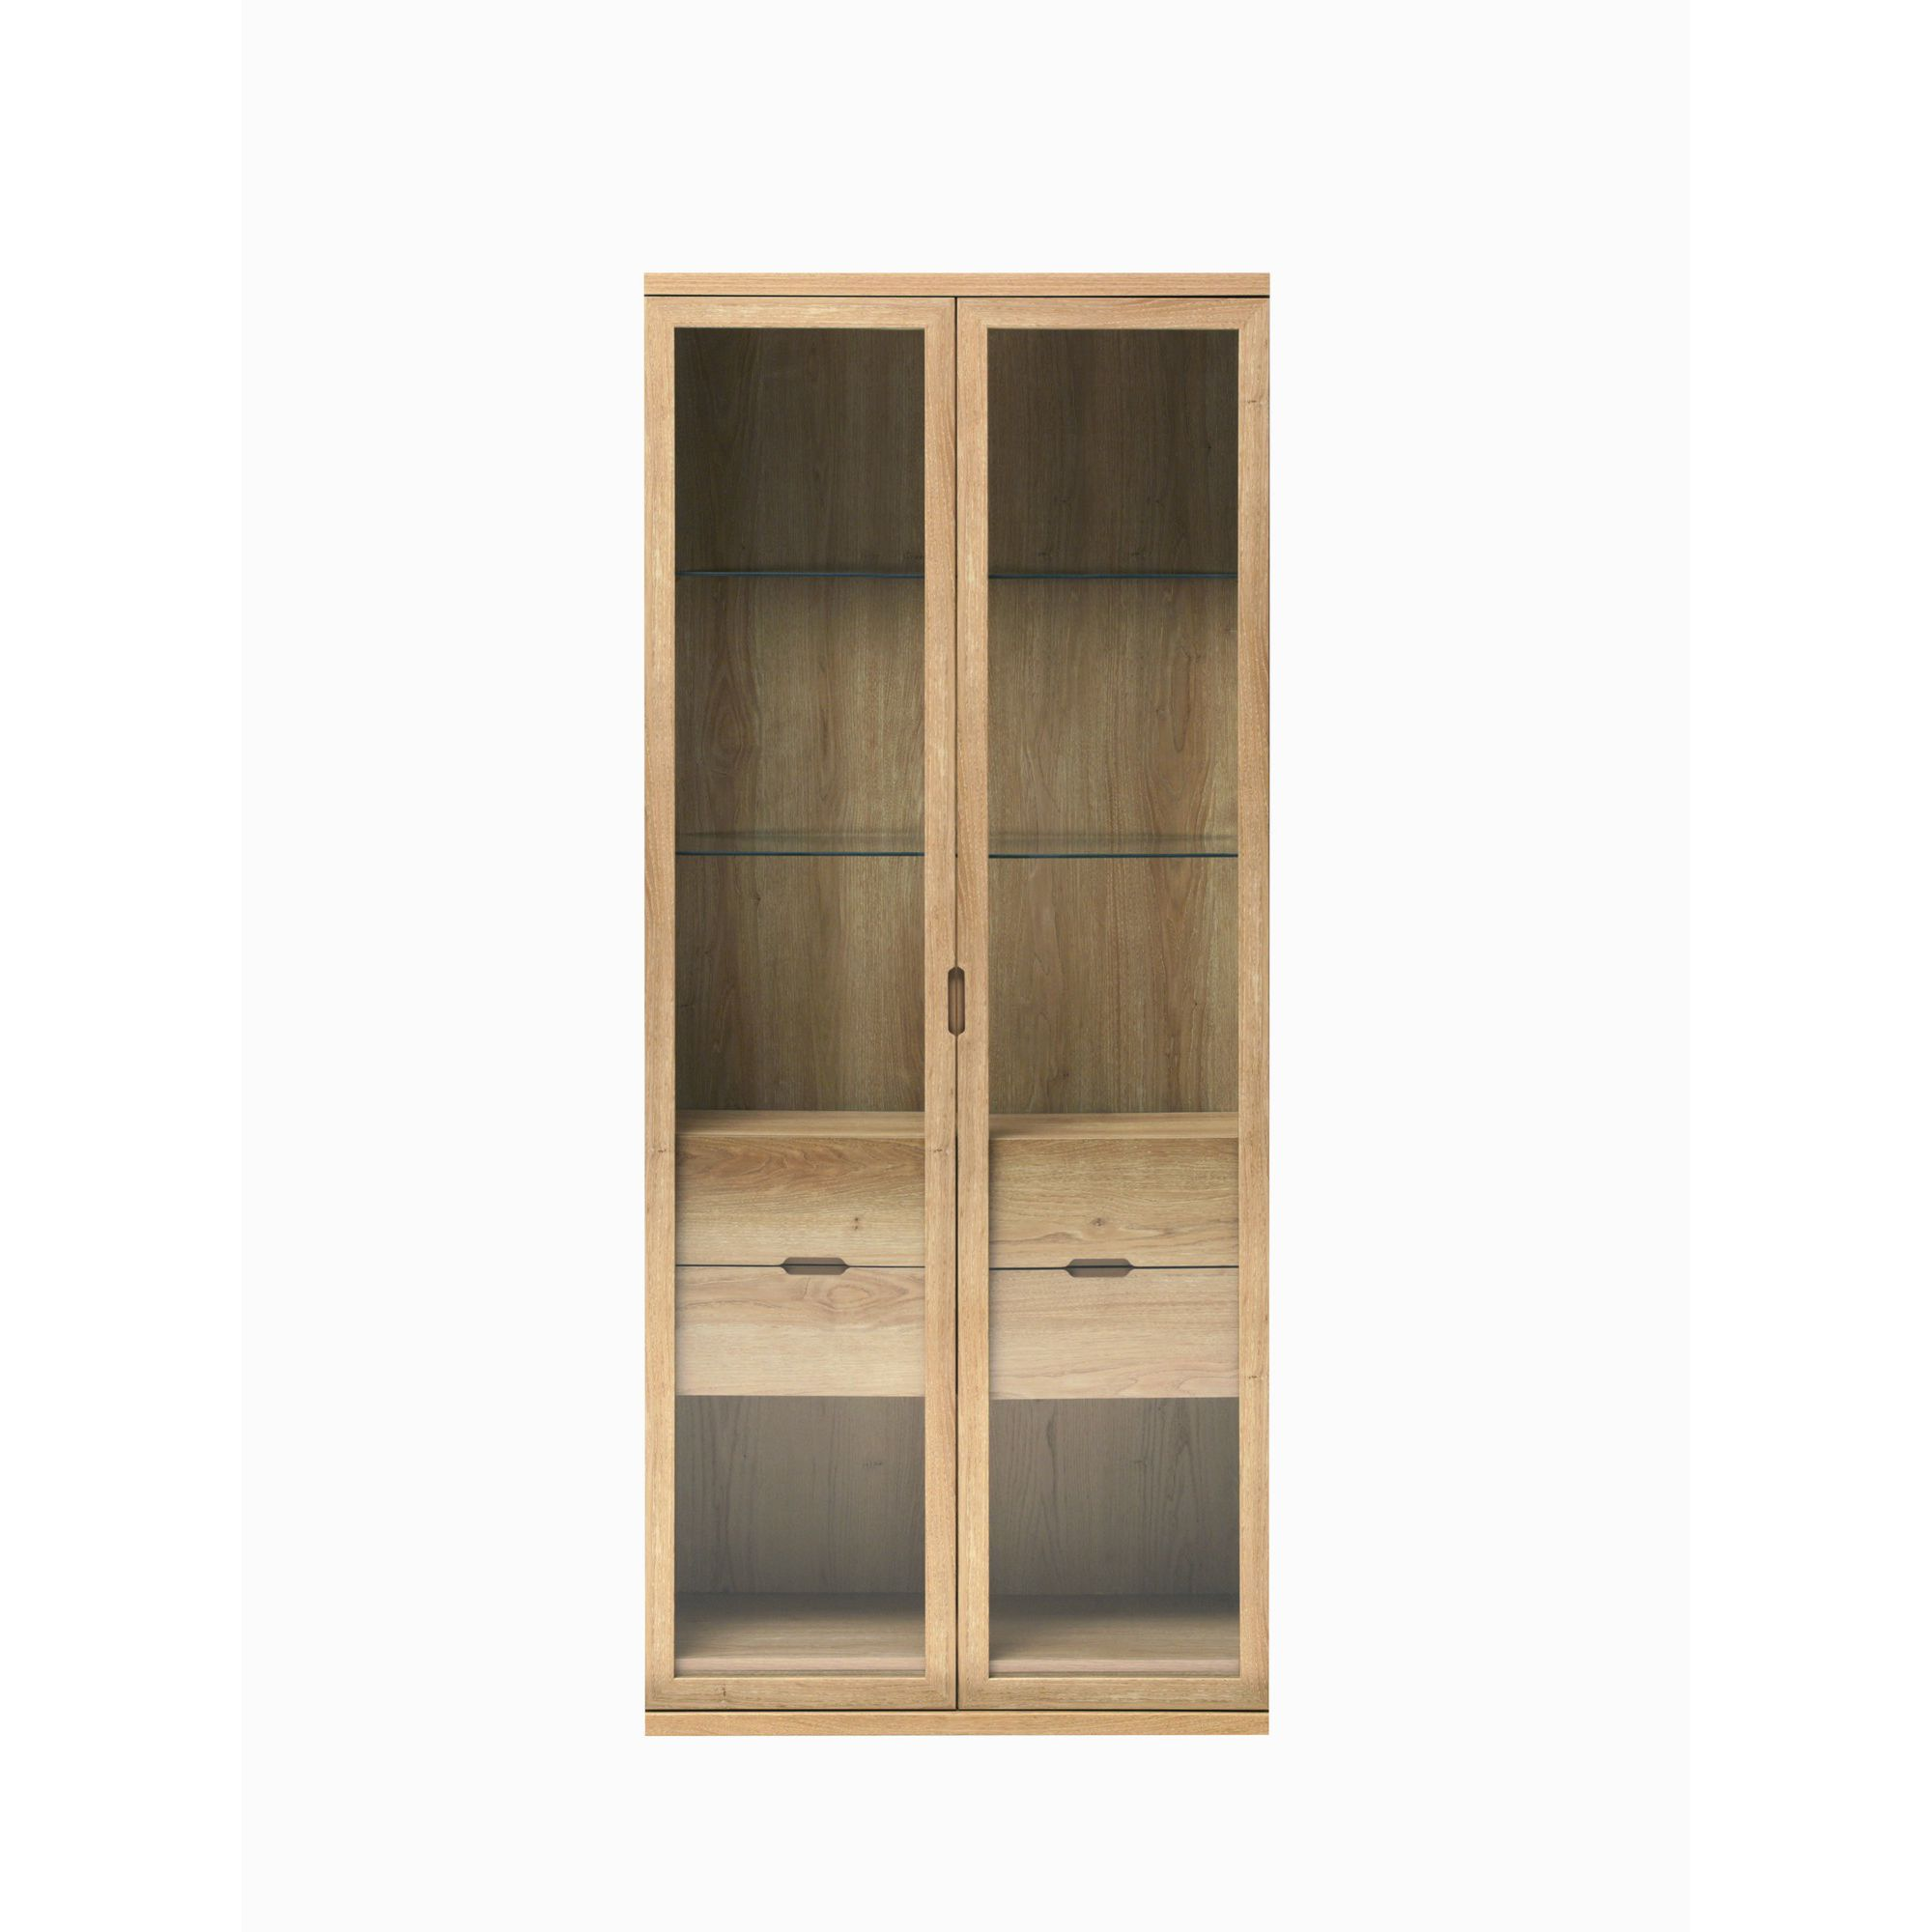 Caxton Darwin Tall Display Cabinet in Chestnut at Tesco Direct